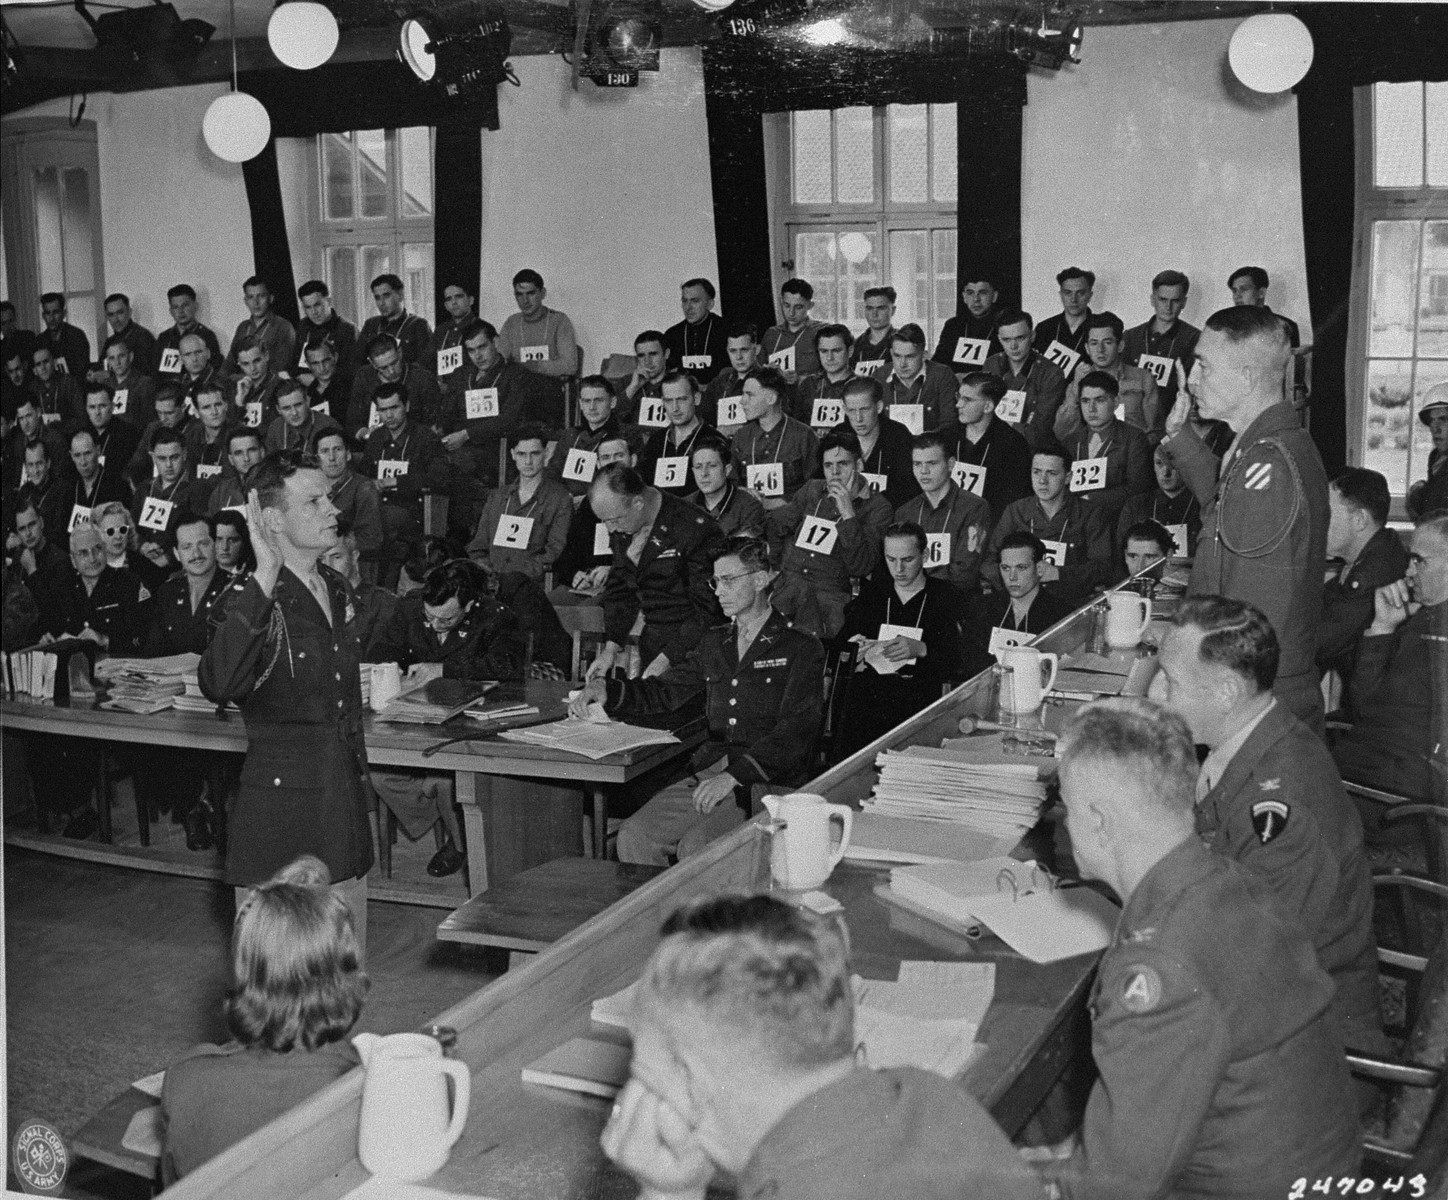 American Lieutenant Colonel Hal. D. McCown is sworn in as a witness for the defense at the trial of 74 SS men charged with perpetrating the Malmedy atrocity.